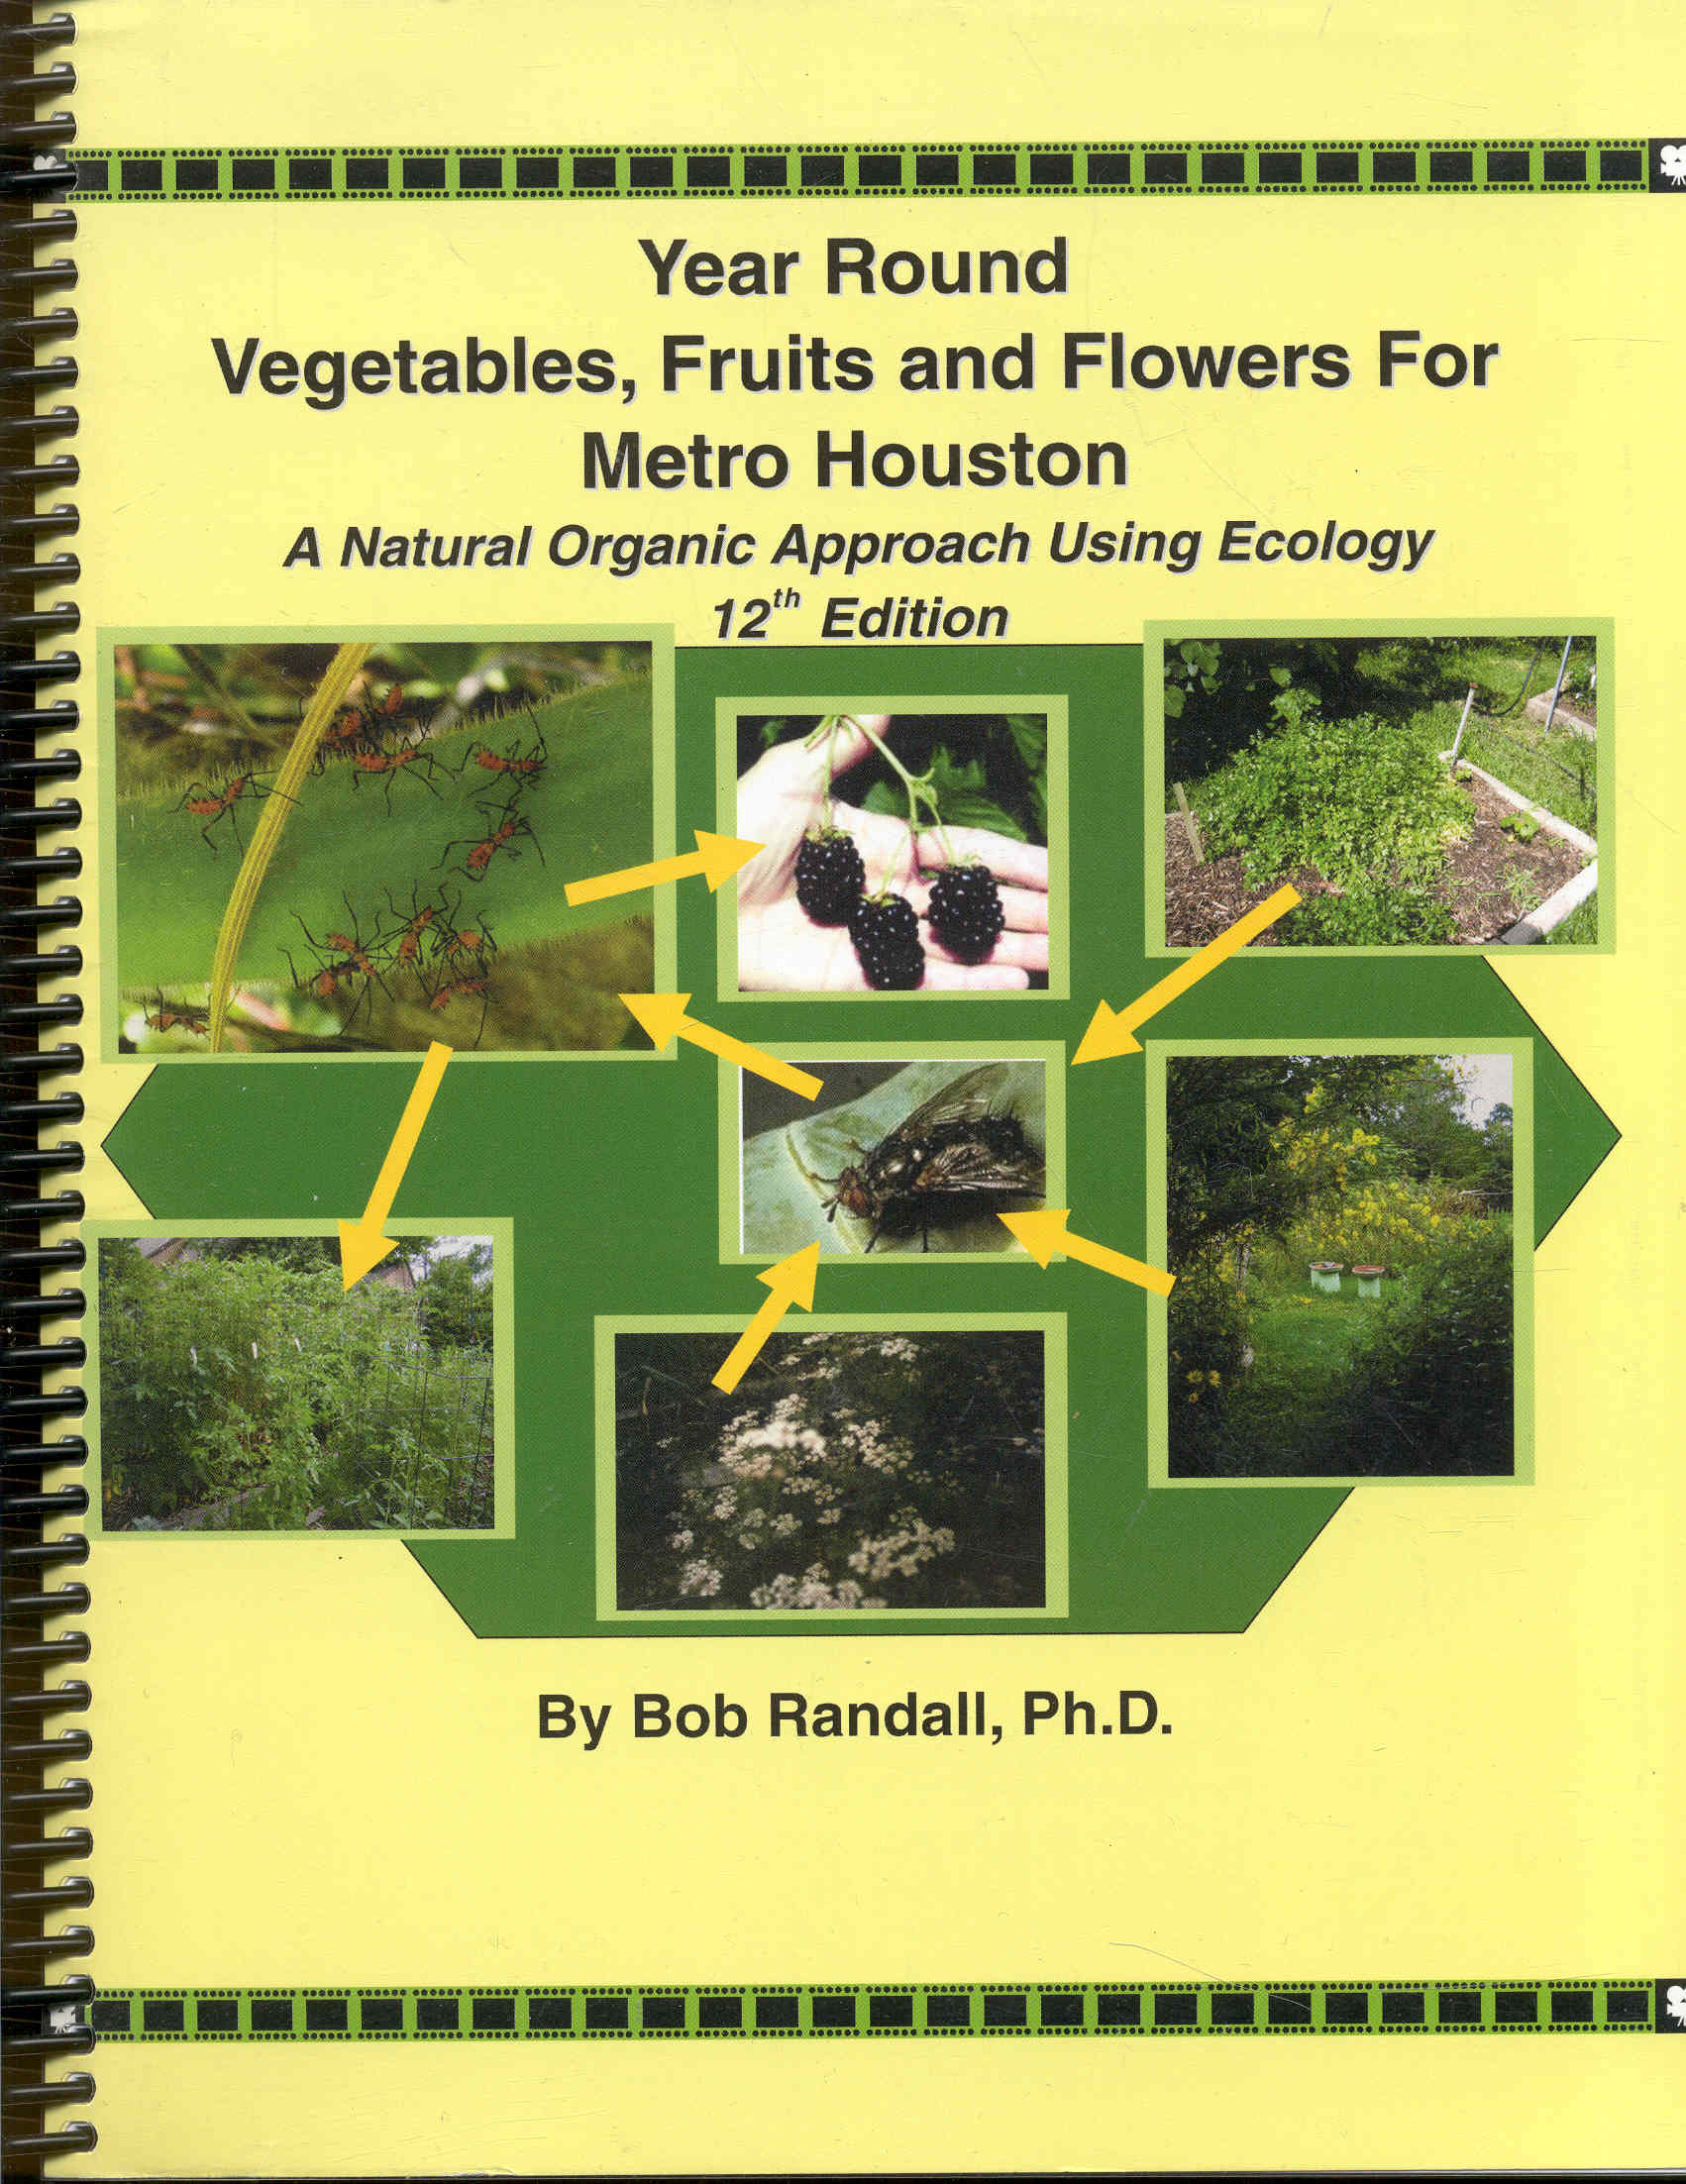 Image for Year Round Vegetables, Fruits and Flowers for Metro Houston: A Natural Organic Approach Using Ecology